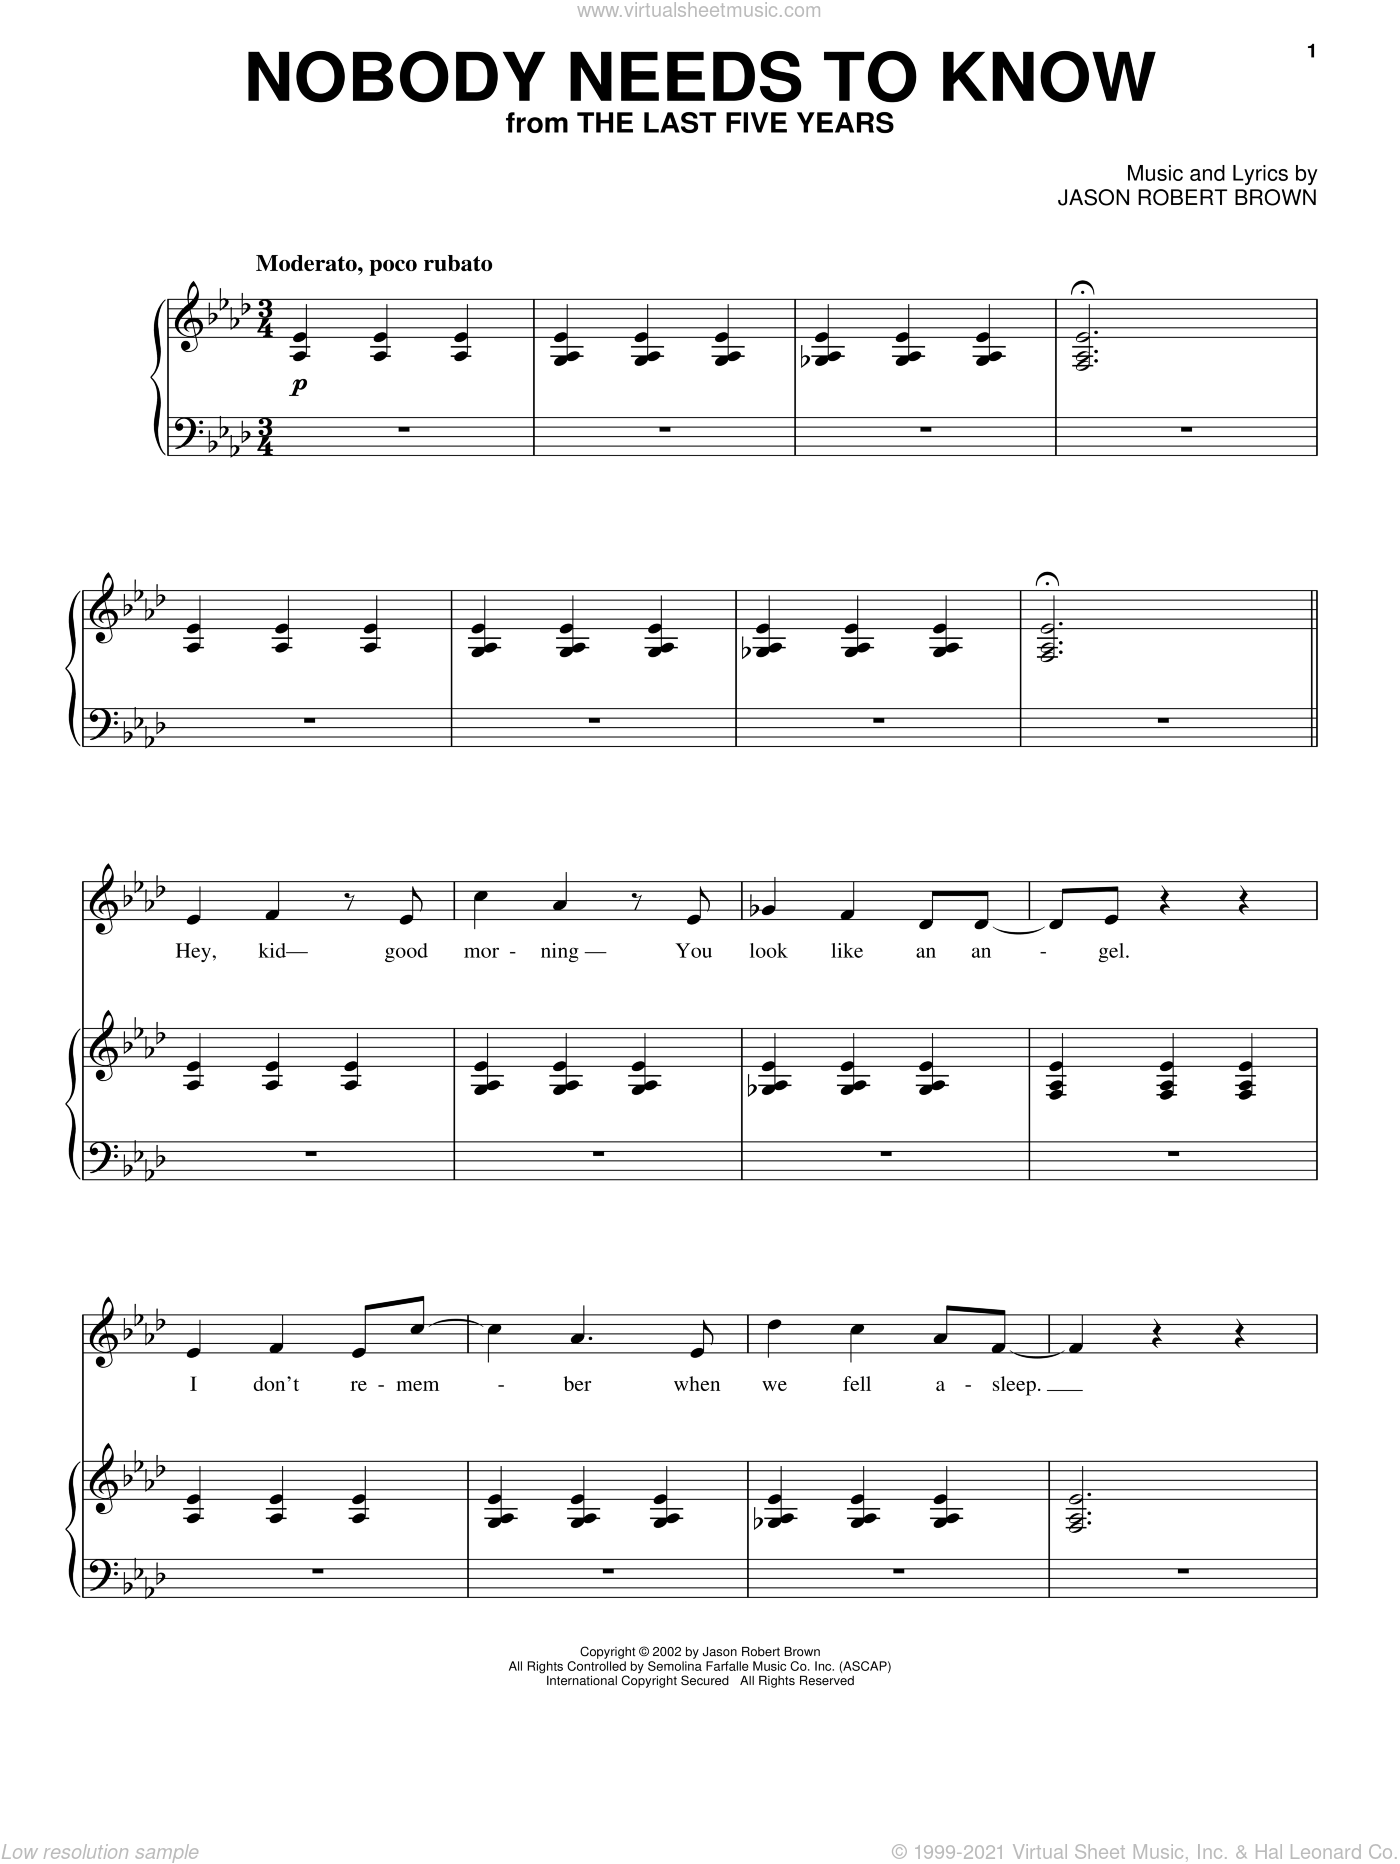 Nobody Needs To Know sheet music for voice, piano or guitar by Jason Robert Brown and The Last Five Years (Musical), intermediate skill level